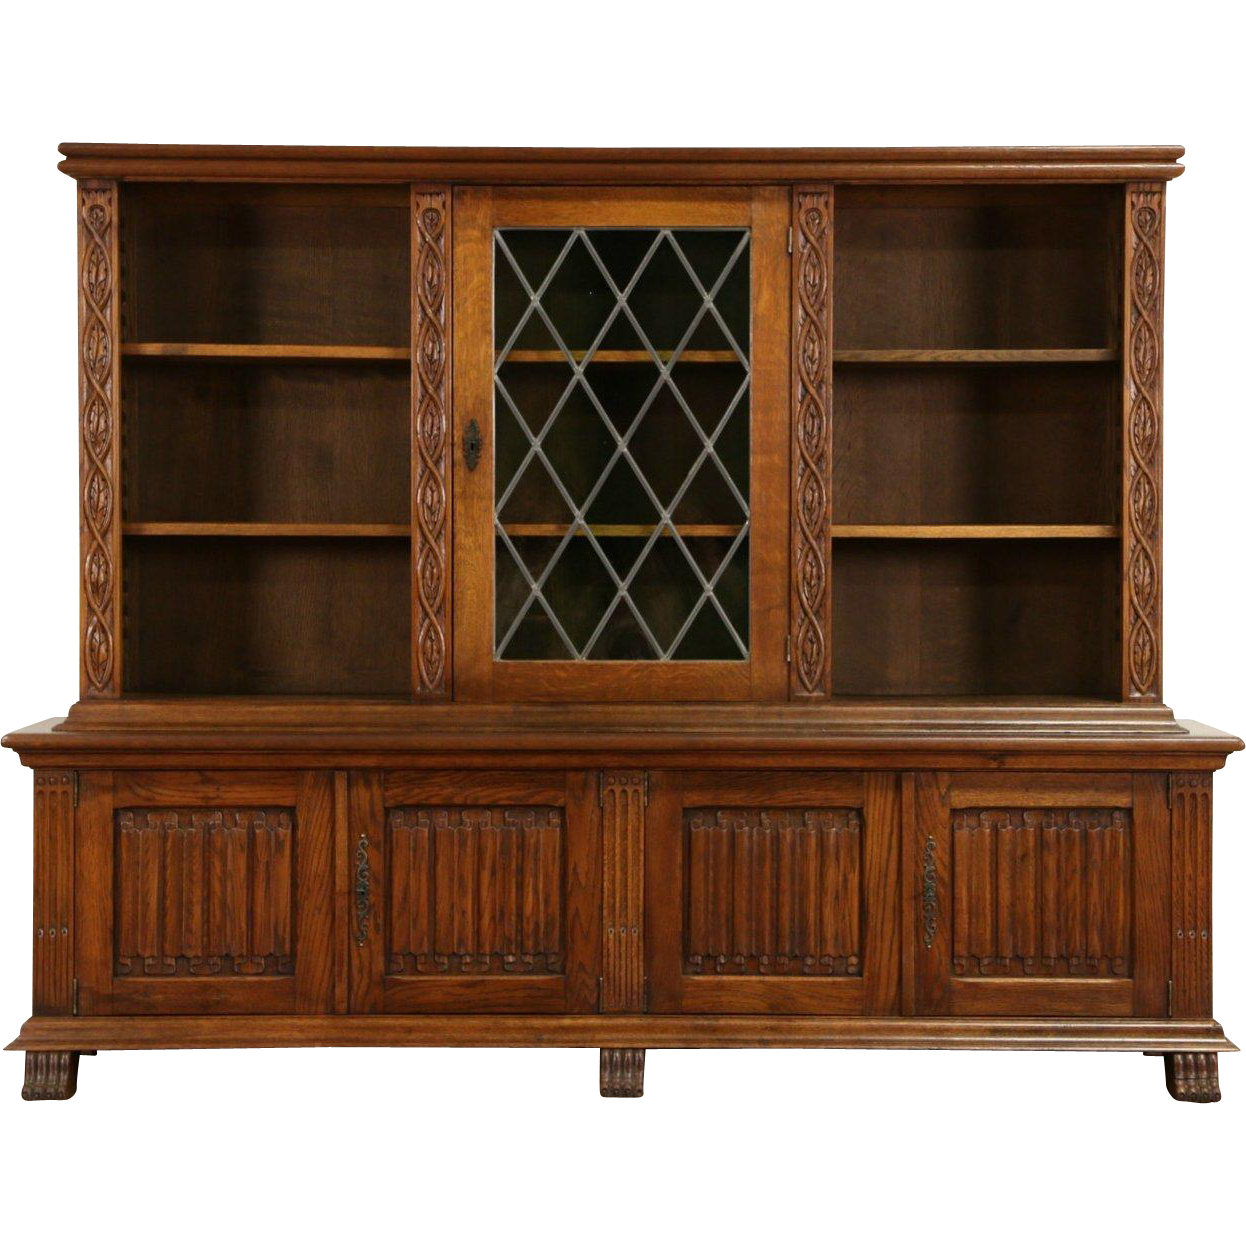 Oak Dutch 1920's Library Bookcase, Leaded Glass Doors,Carved Linen Fold Panels